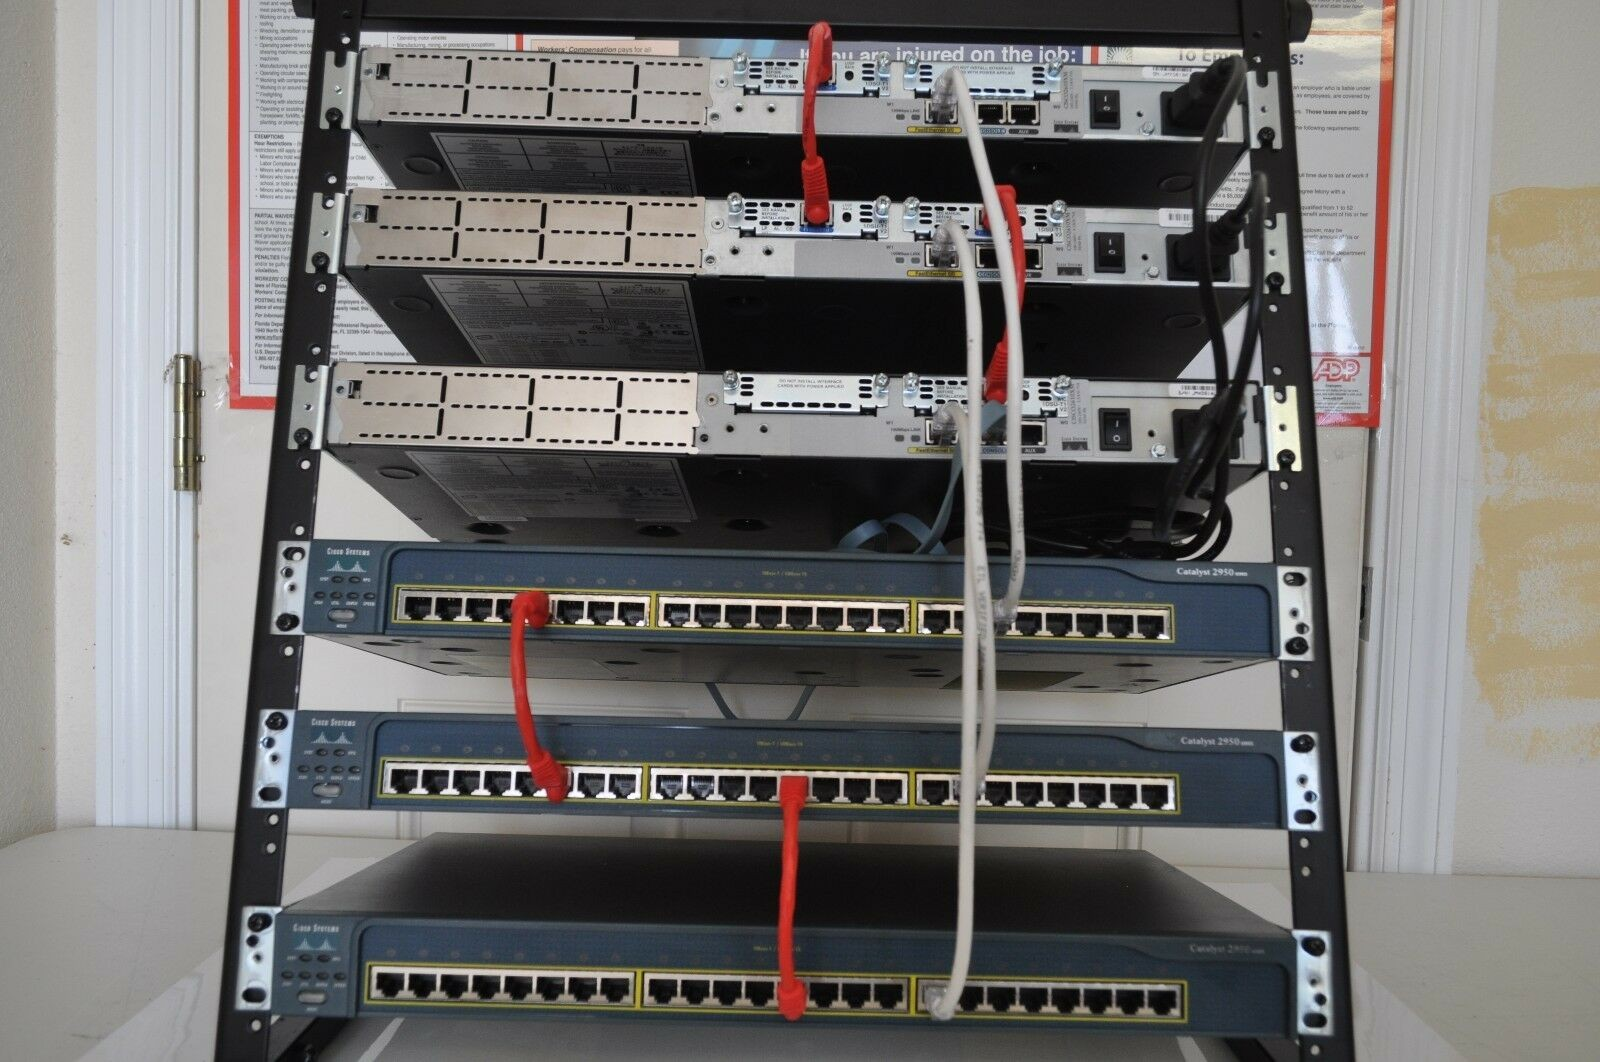 CCNP Routing & Switching Rack Rentals